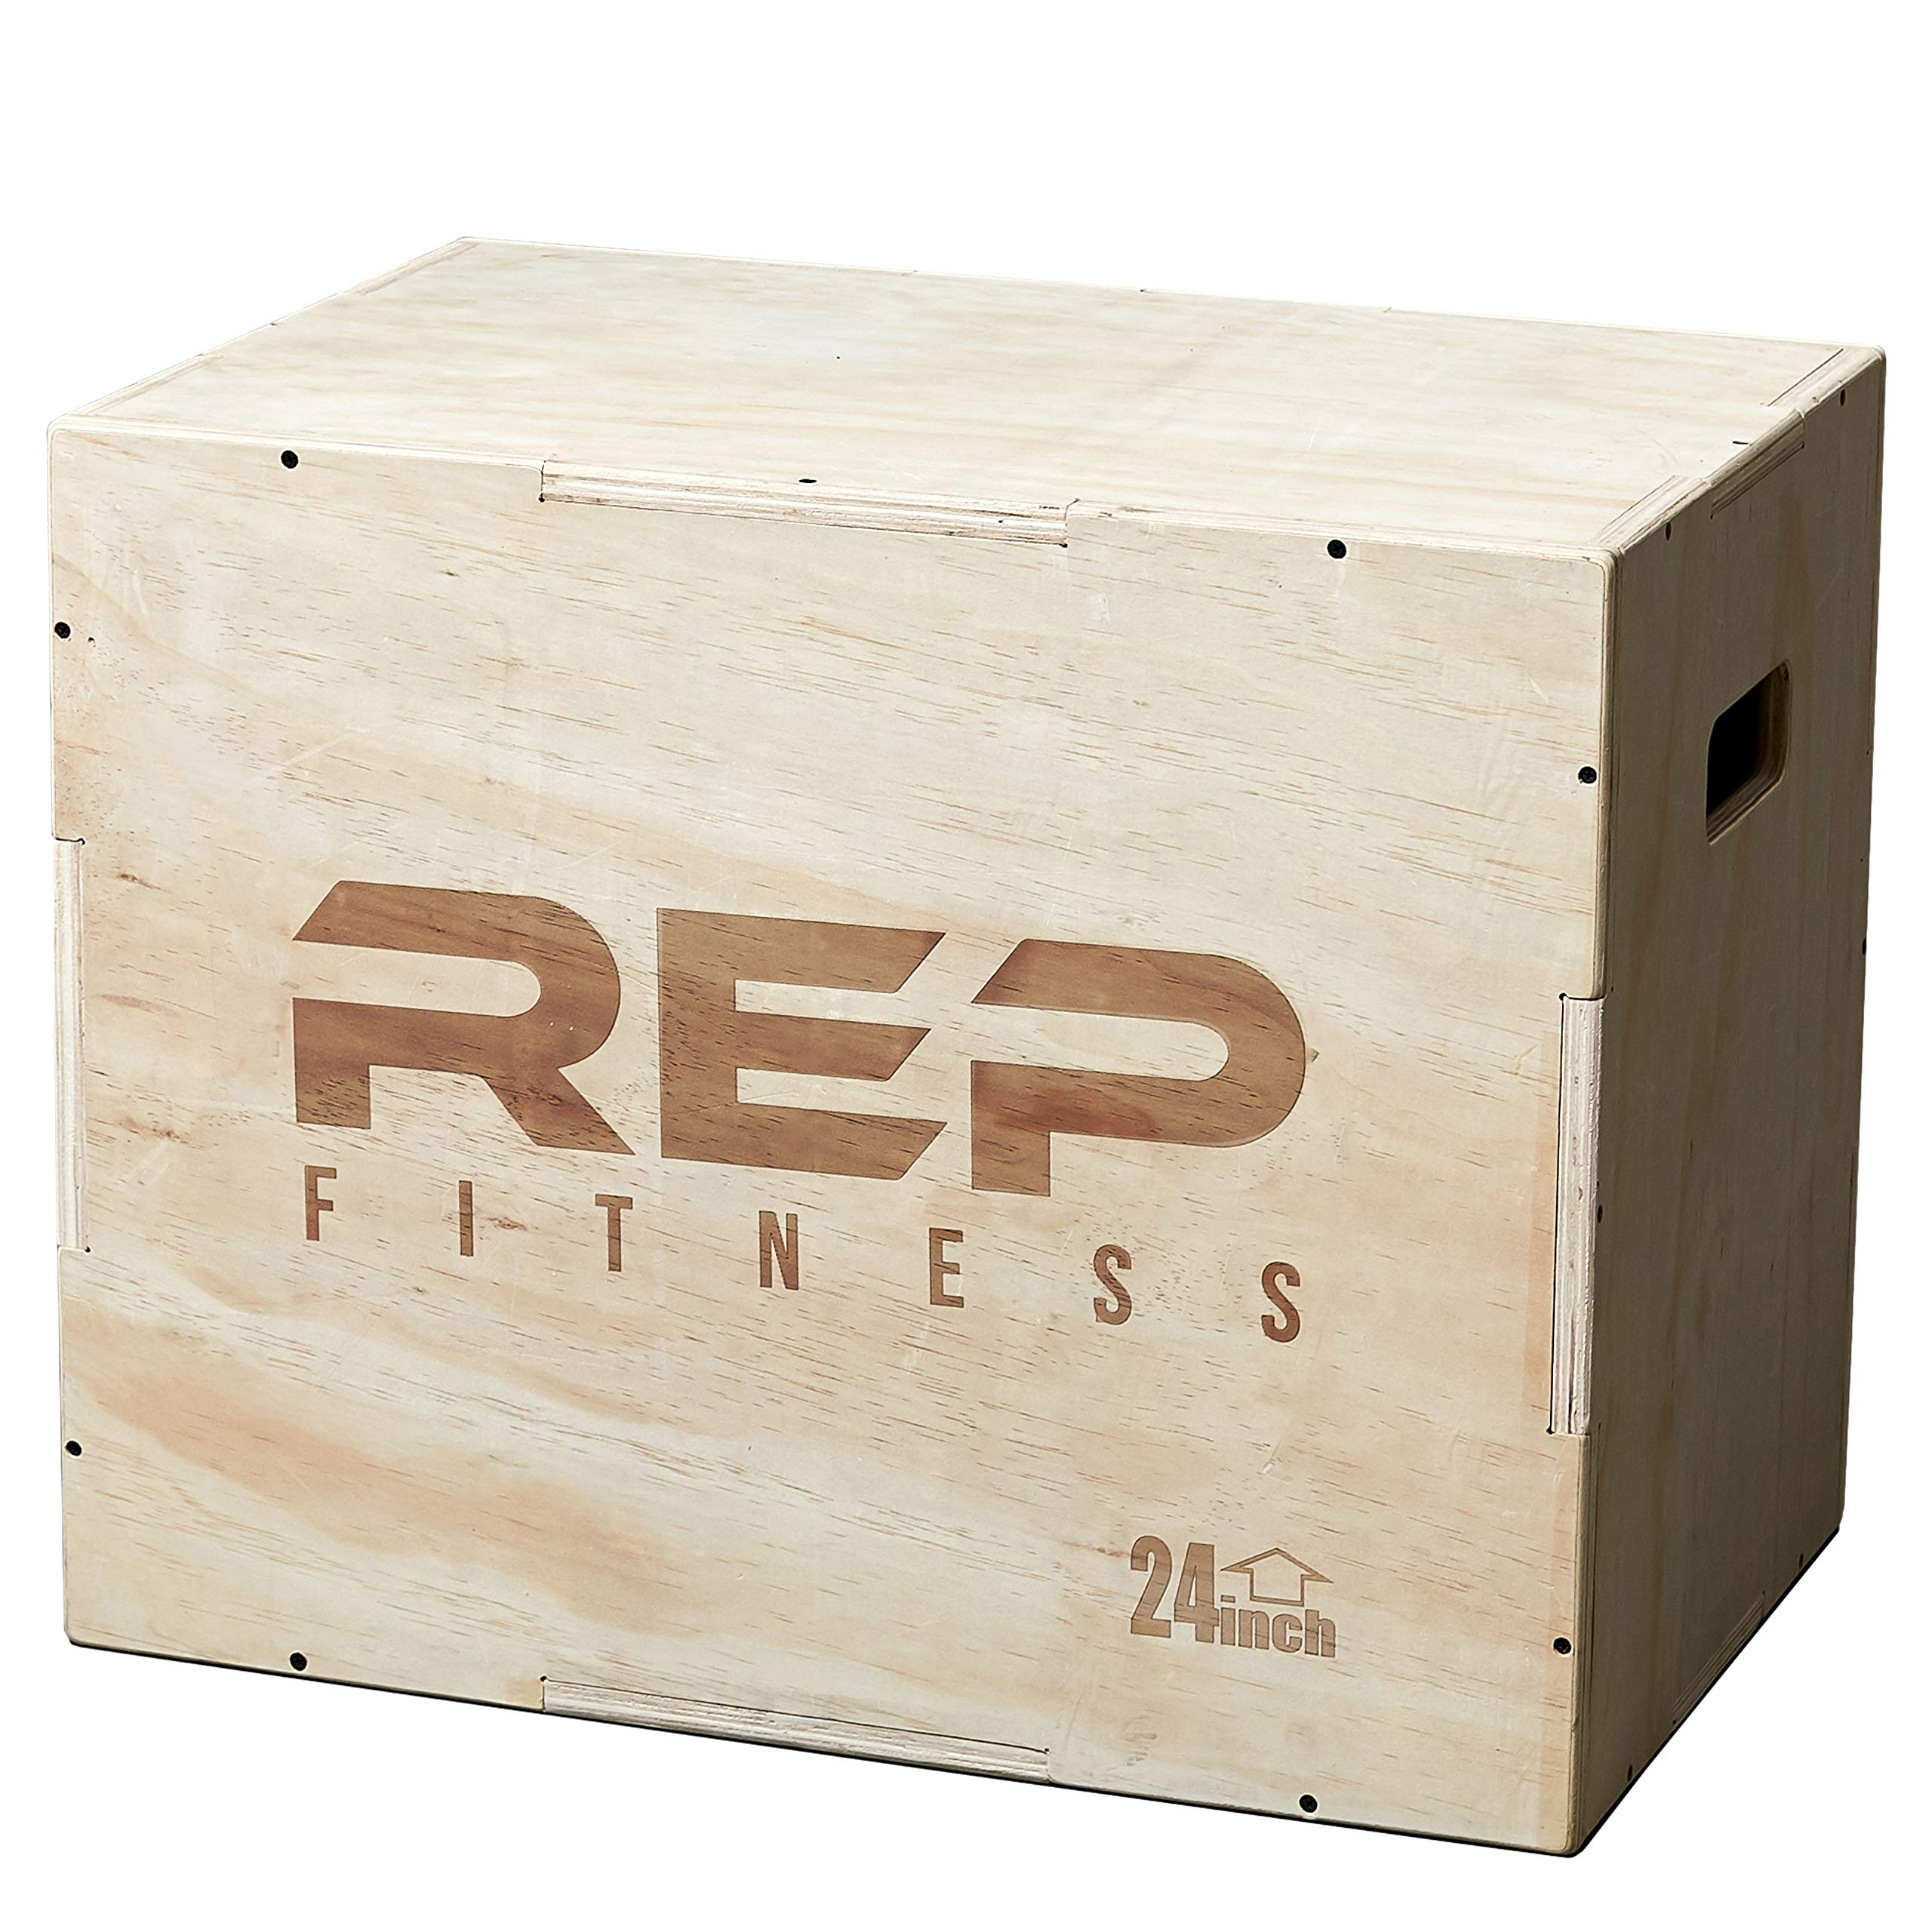 Rep 3 in 1 Wood Plyometric Box for Jump Training and Conditioning 30/24/20 by REP FITNESS